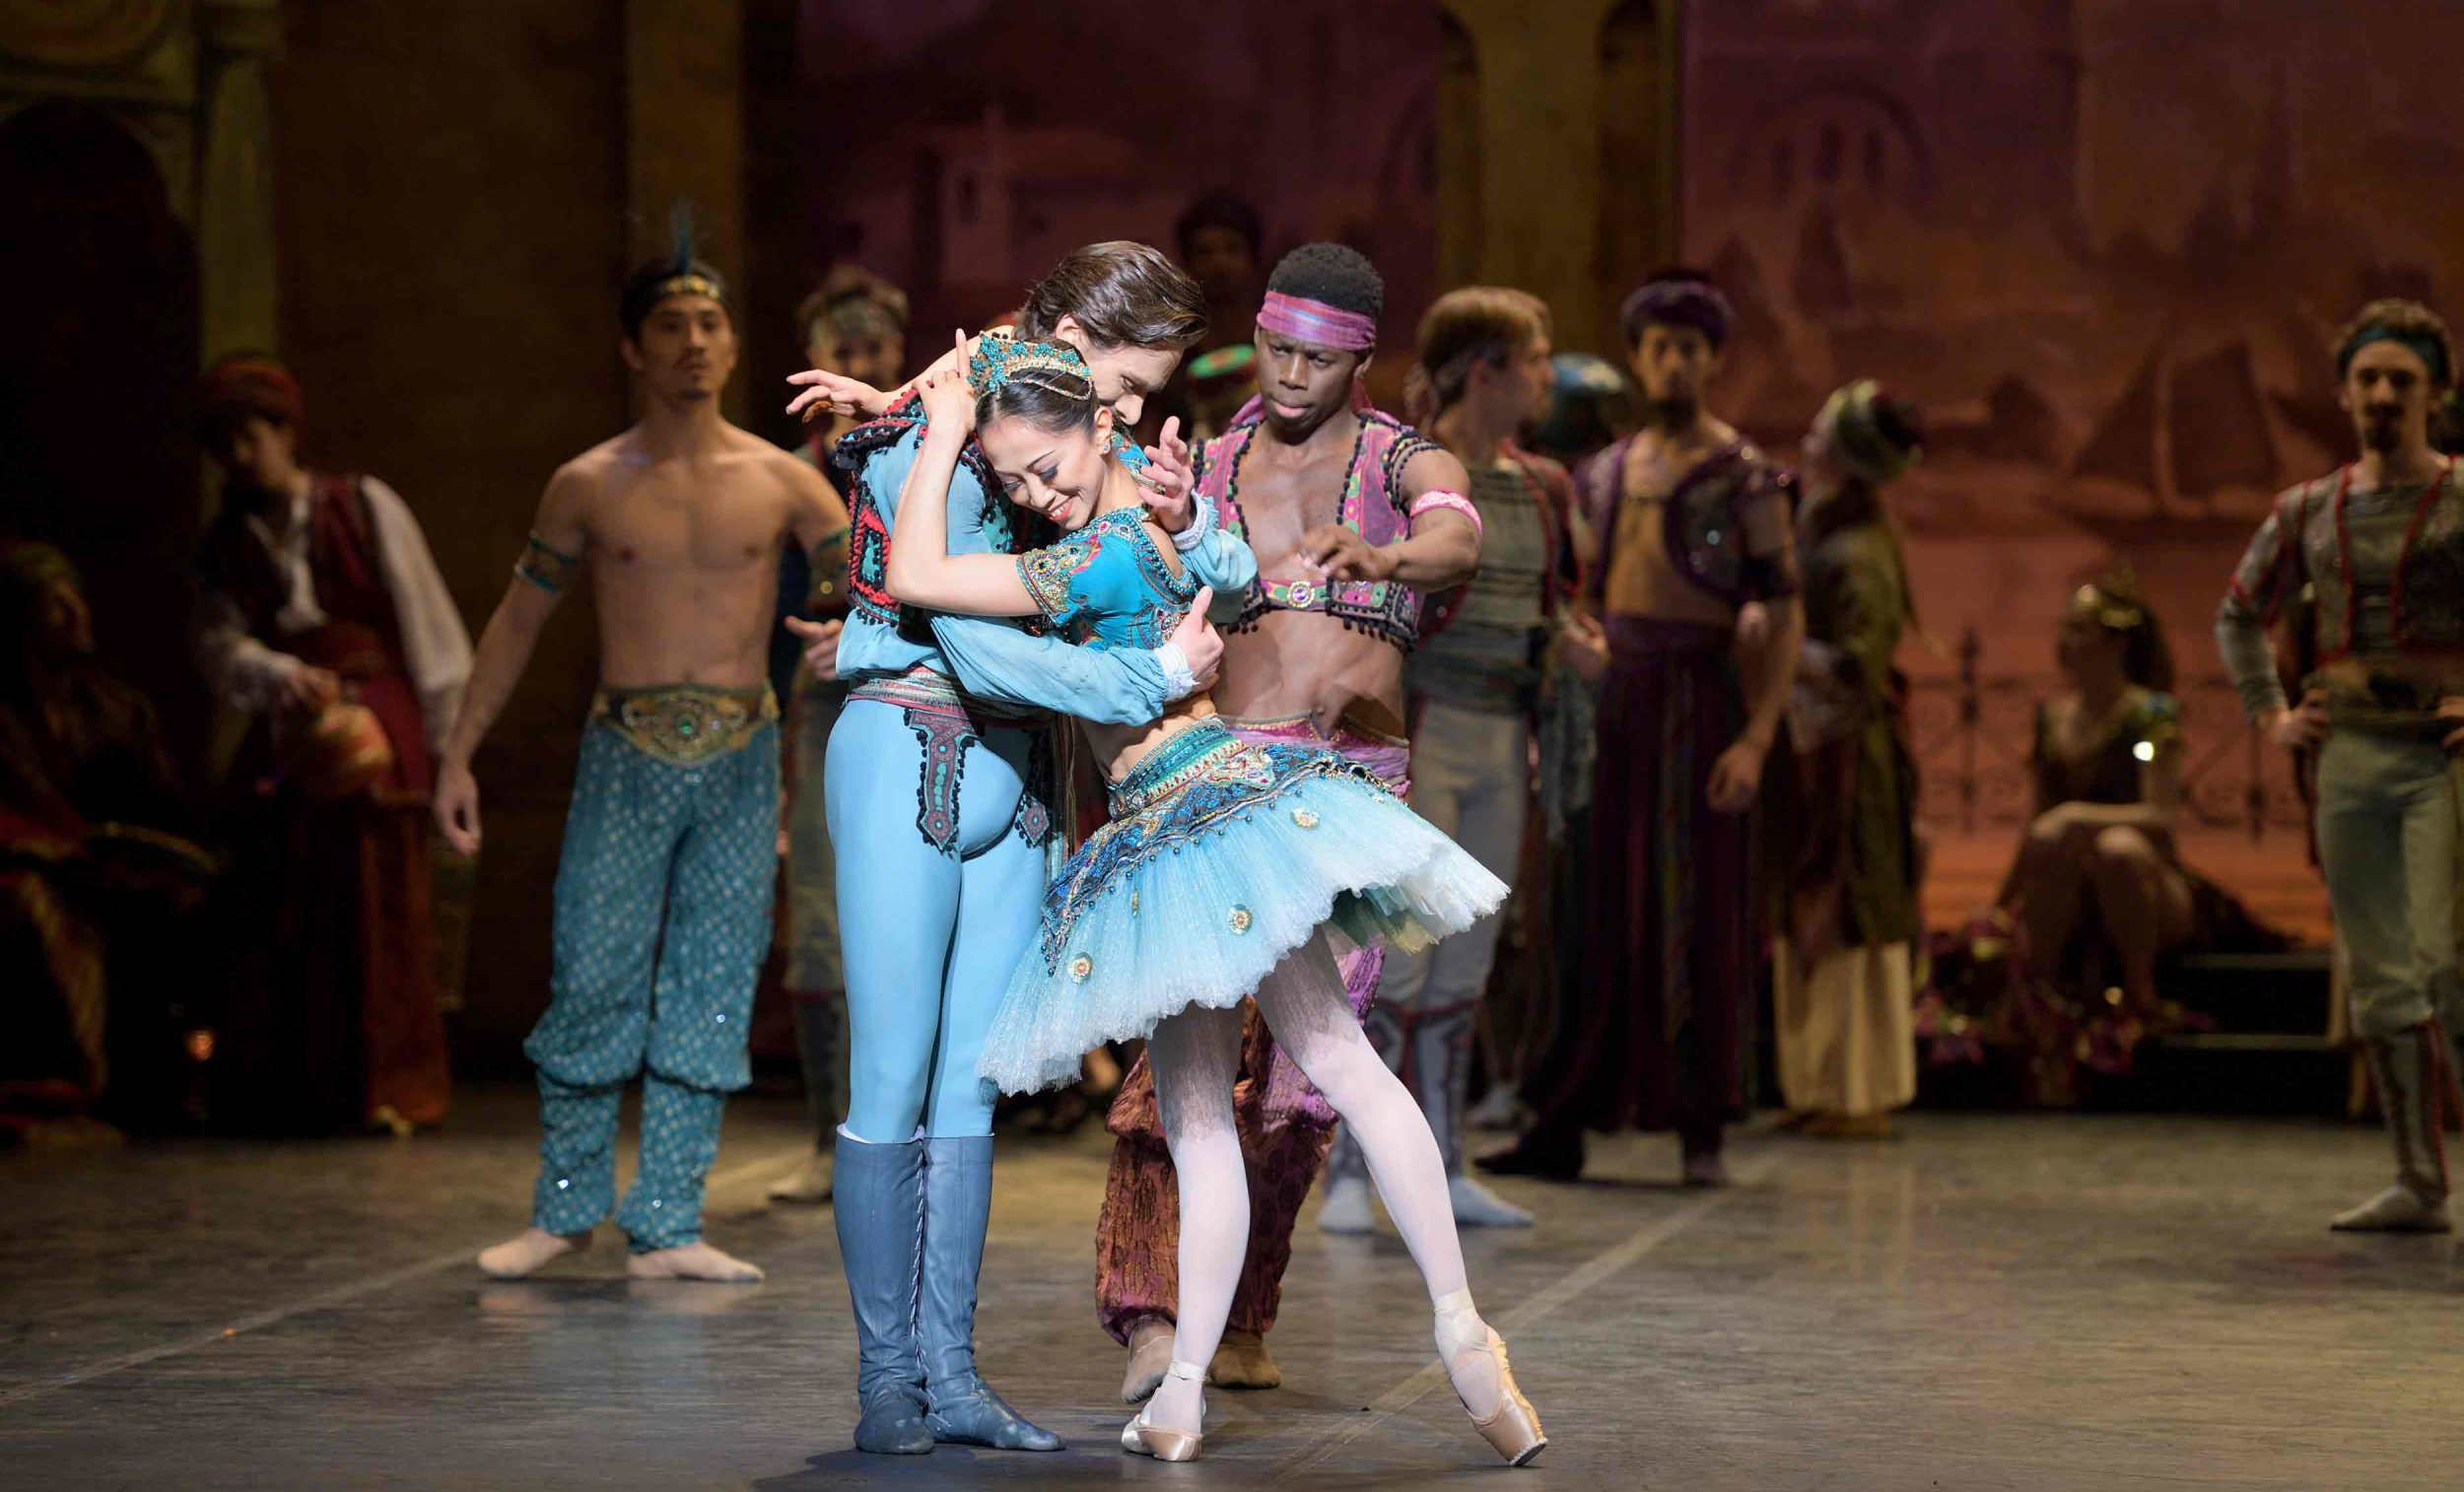 Francesco Gabriele Frola and Erina Takahashi as Conrad and Medora in Le Corsaire © Laurent Liotardo.